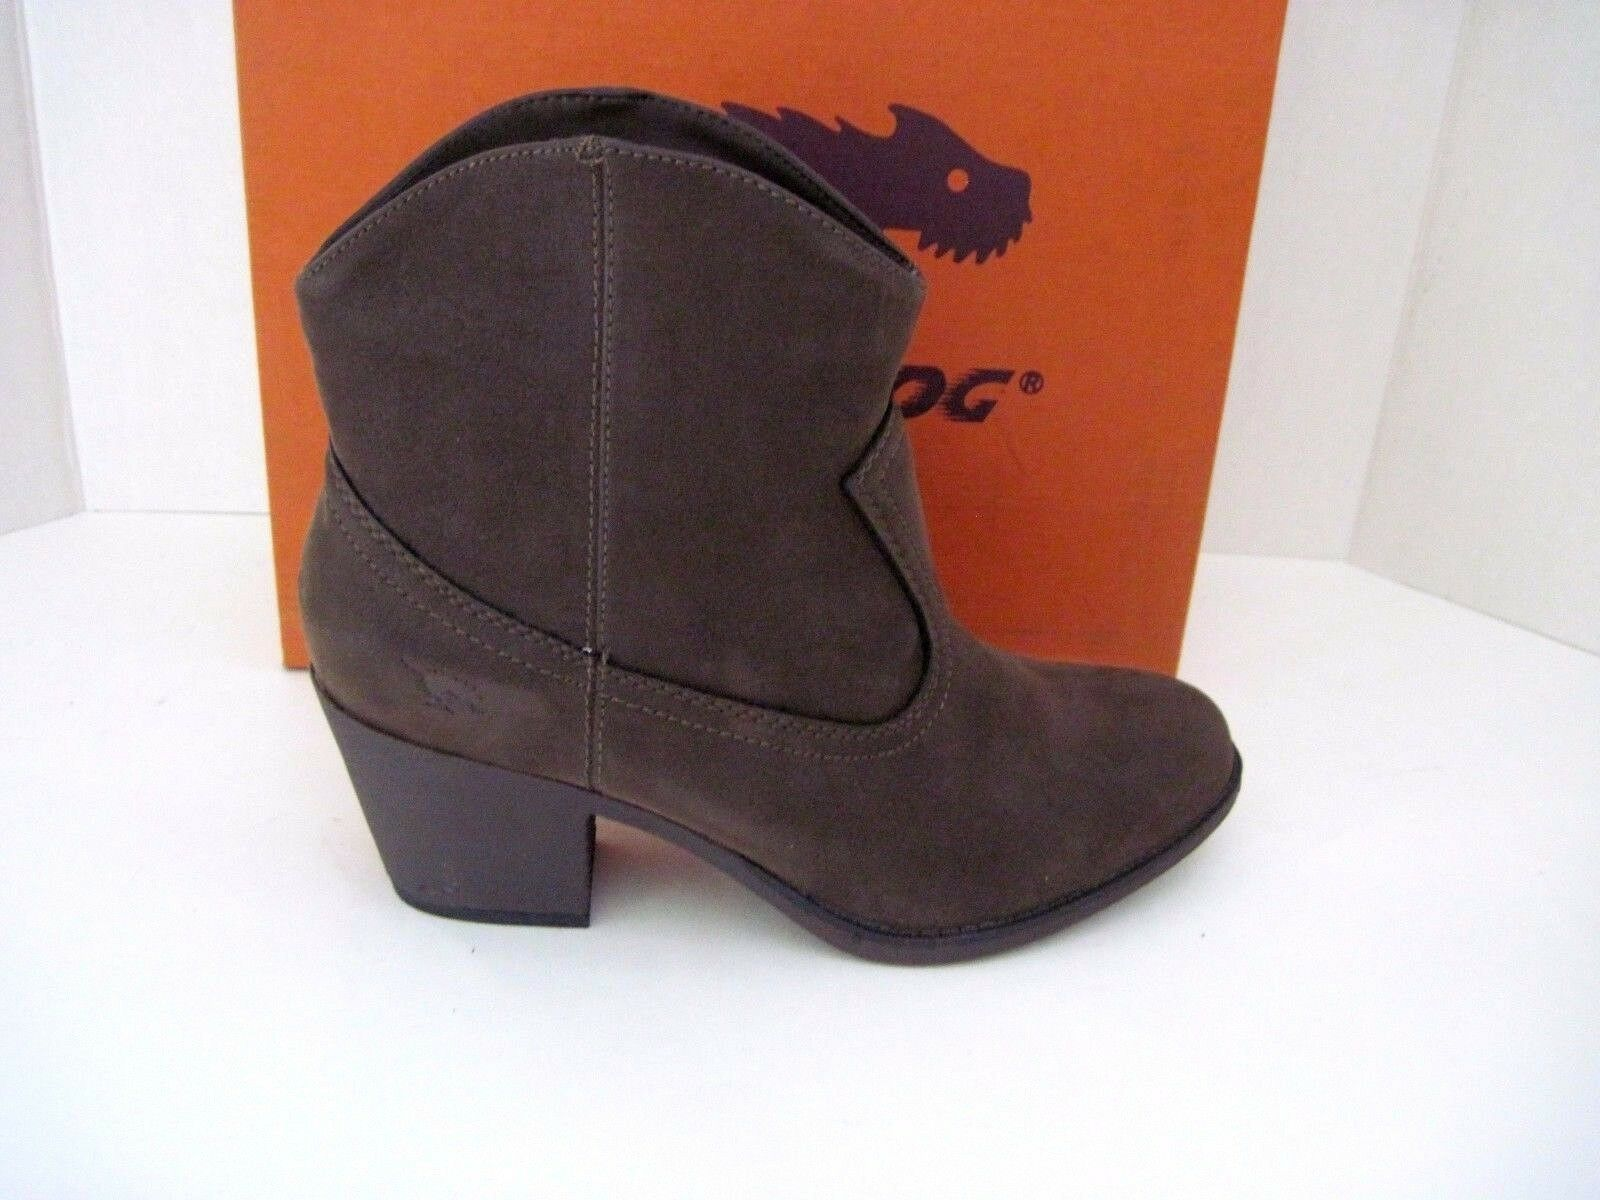 Rocket Dog Women's Soundoff Ankle Slip On Heeled Booties Boots, Brown  9 M, NEW